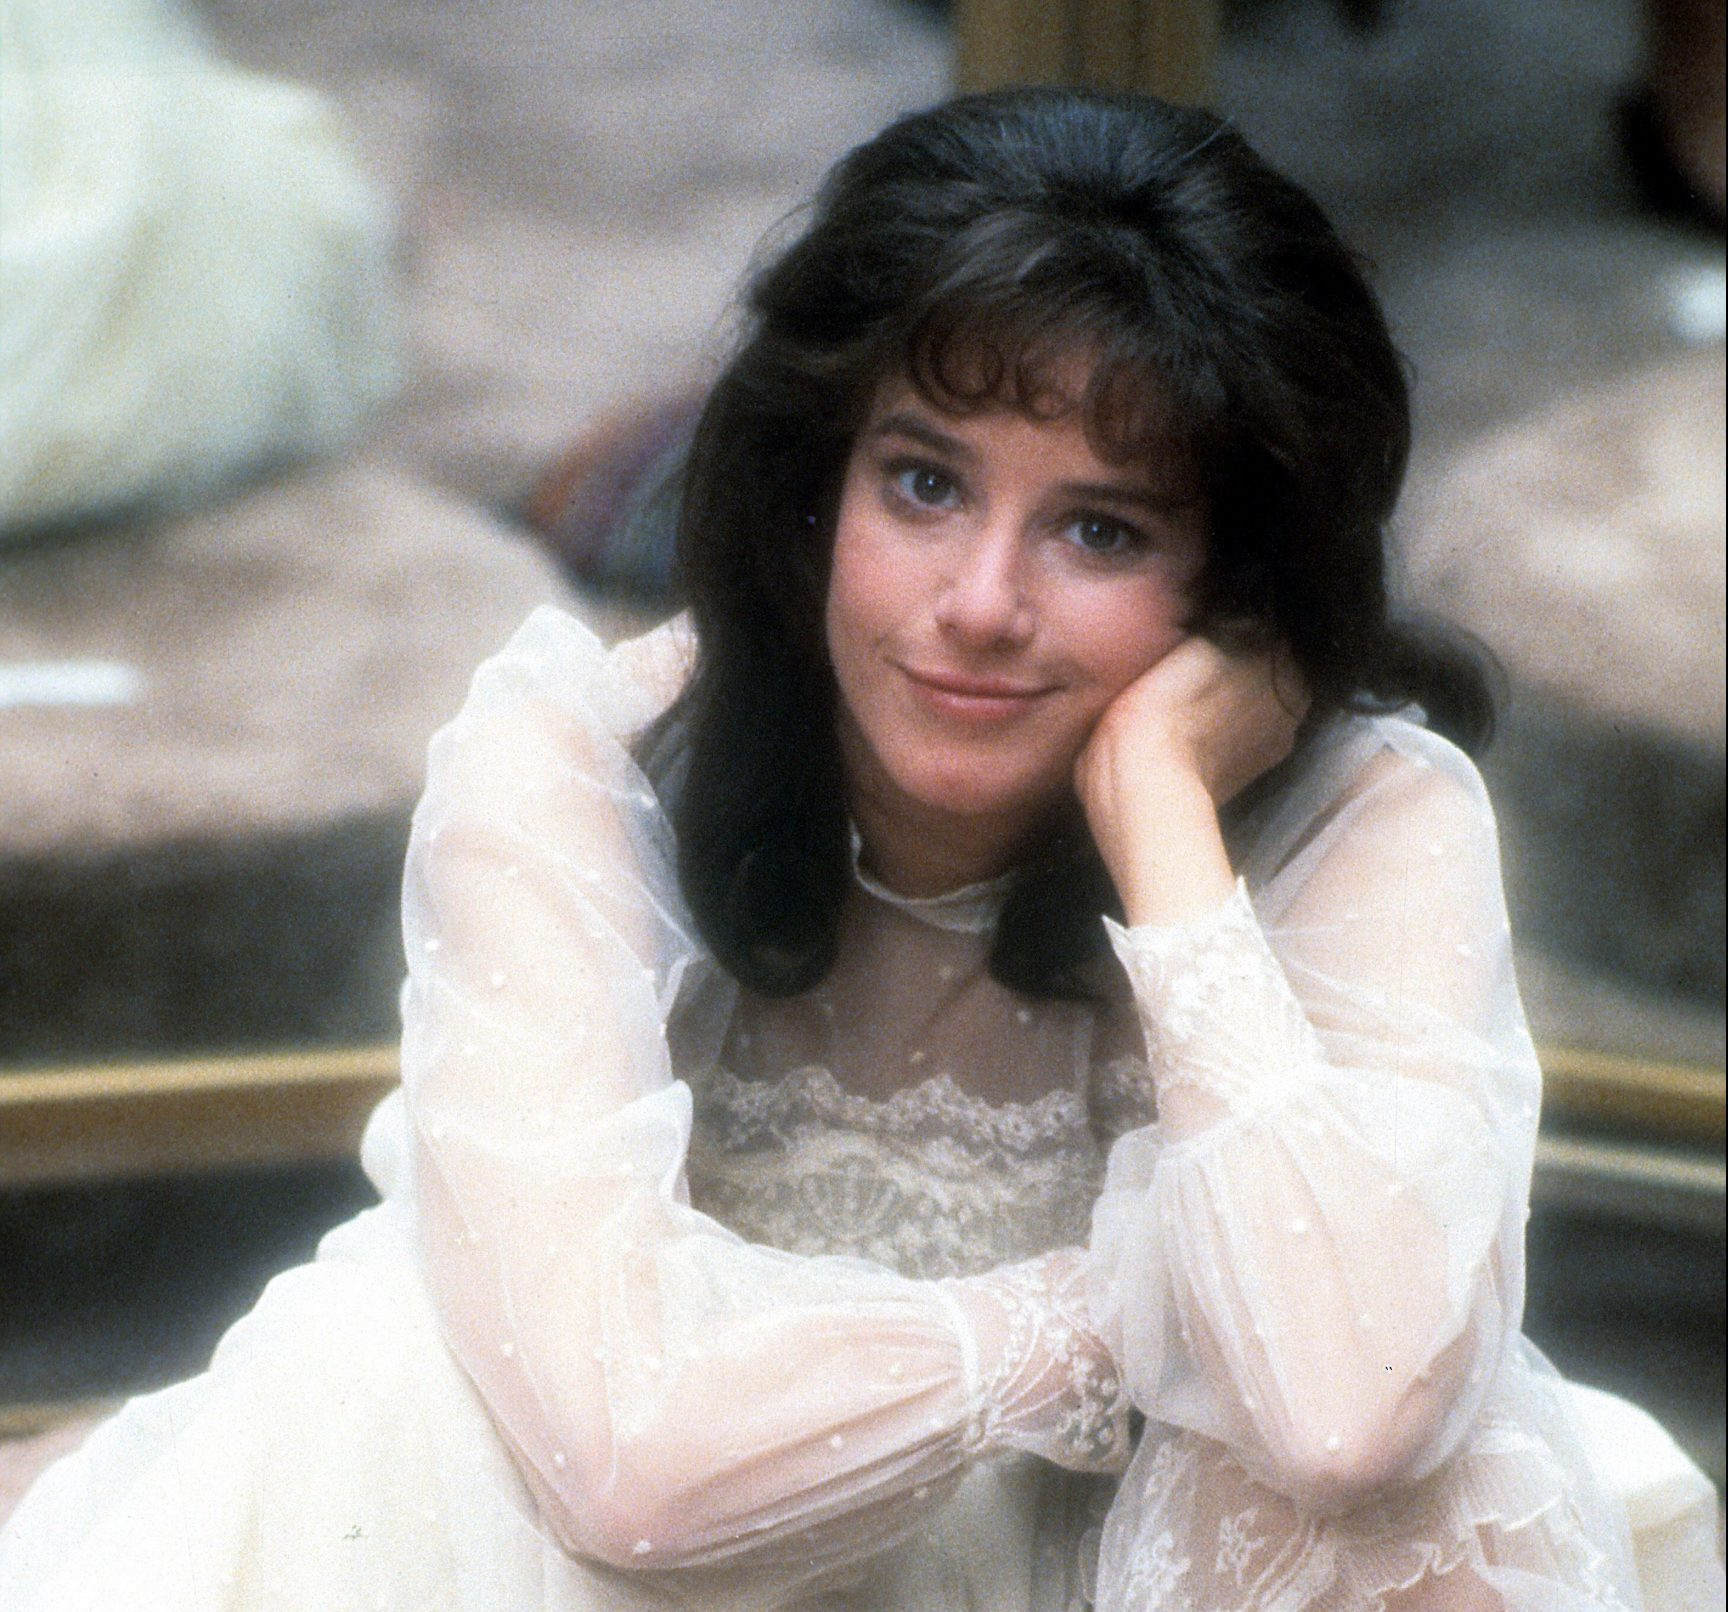 zzzz scaled e1605277462821 30 Things You Never Knew About Debra Winger